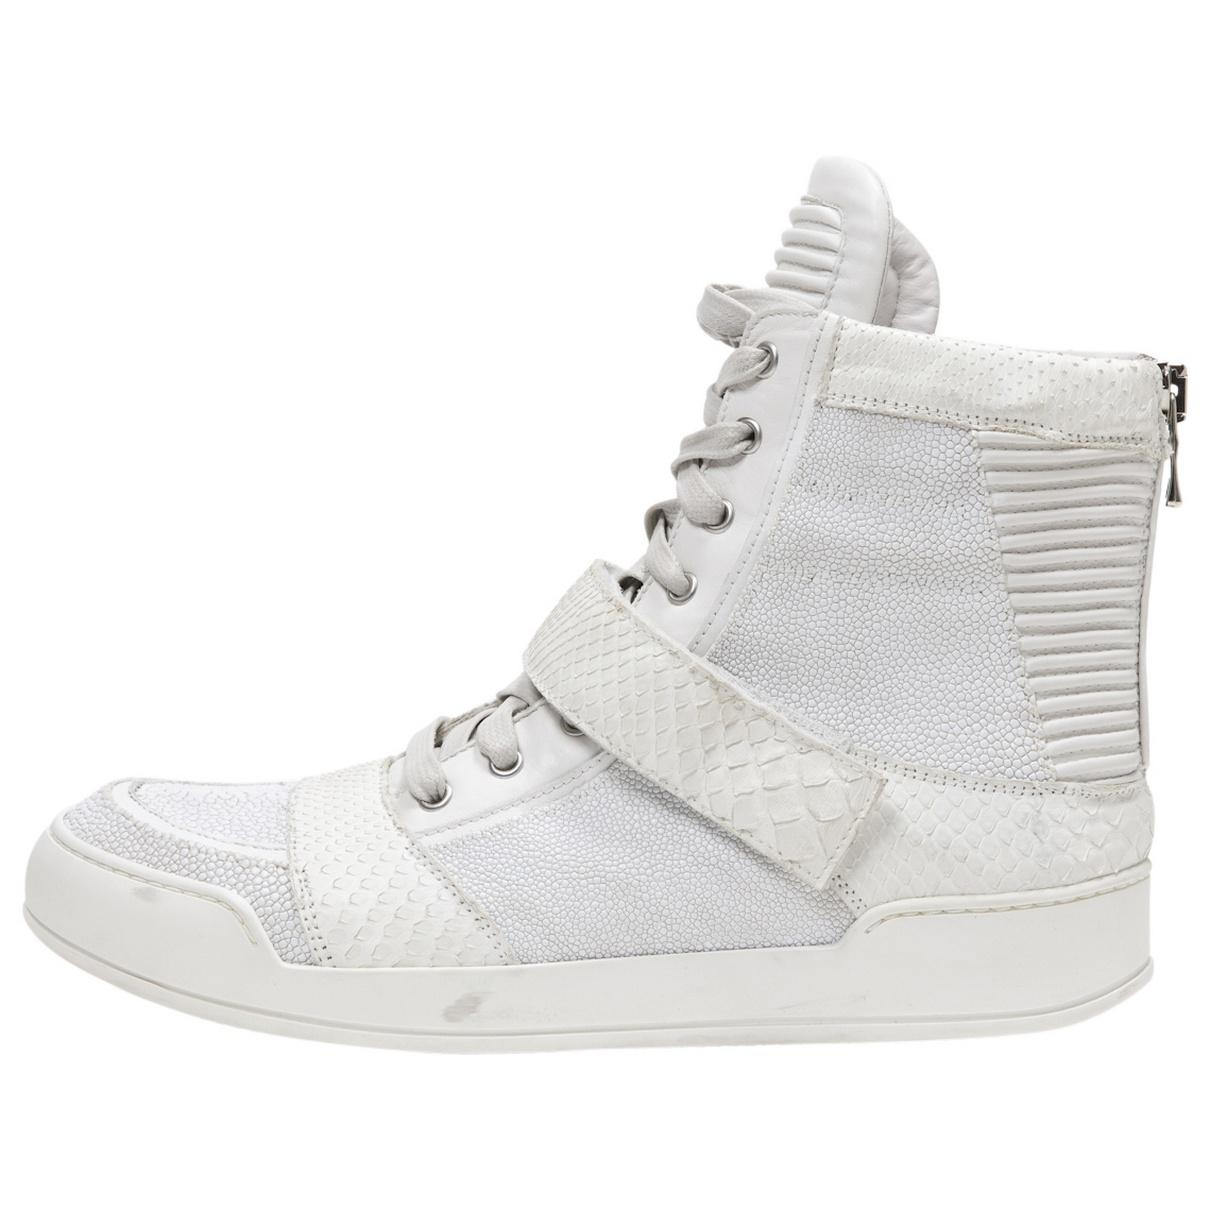 Pre-owned - TRAINERS Balmain dkrQHK